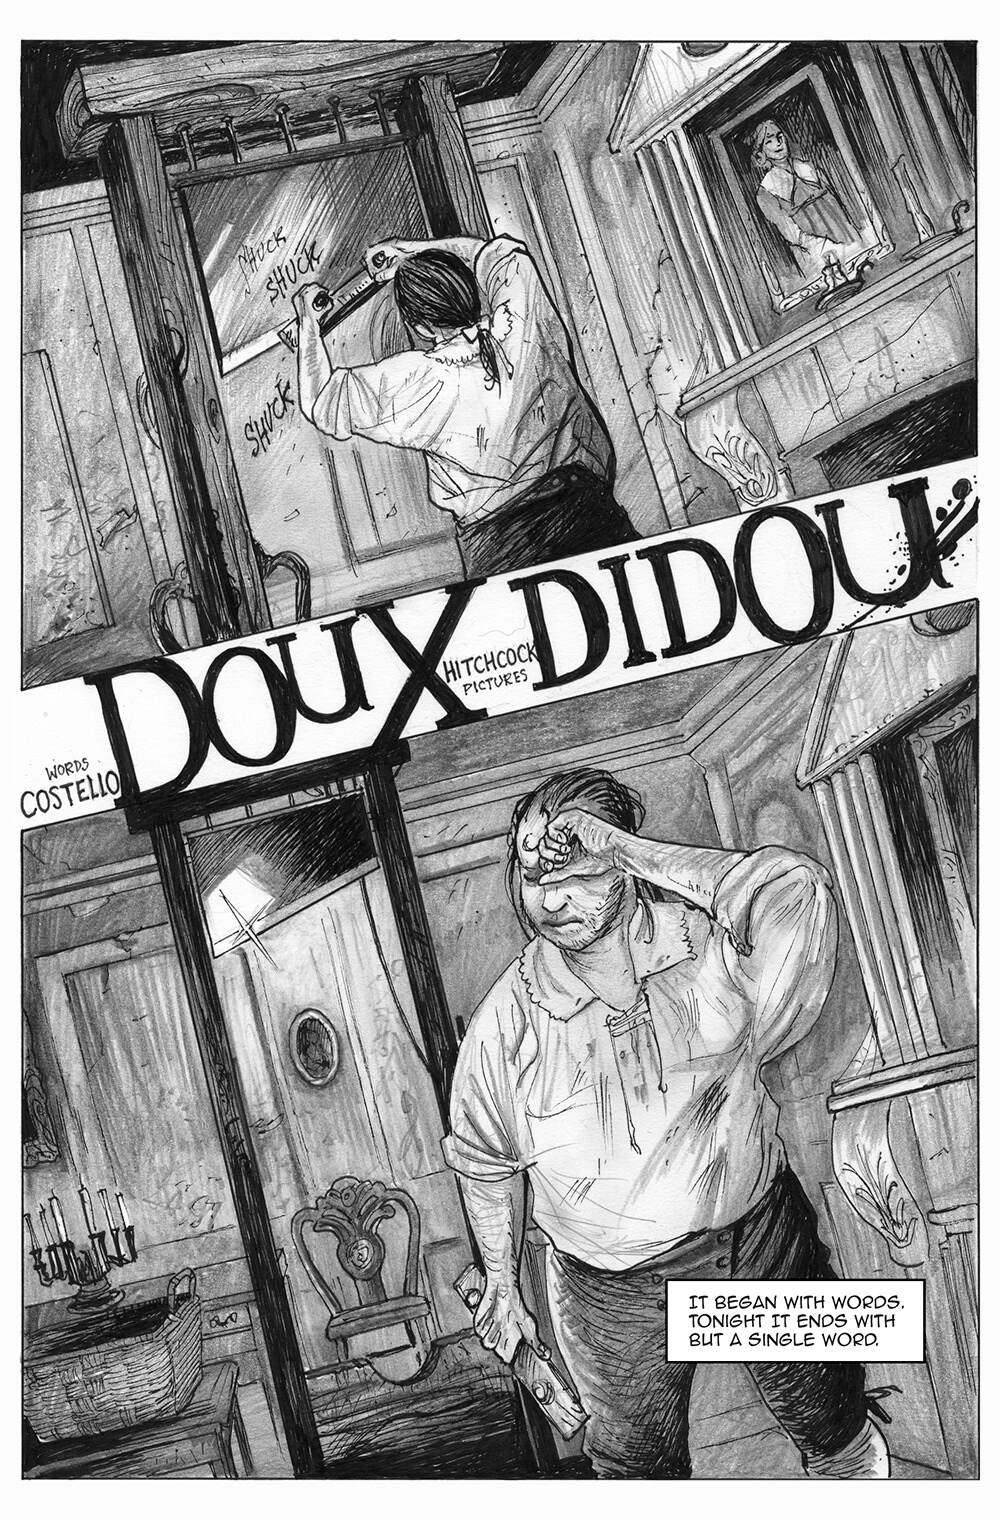 Doux Didou, page 1, by Sam Costello and David Hitchcock